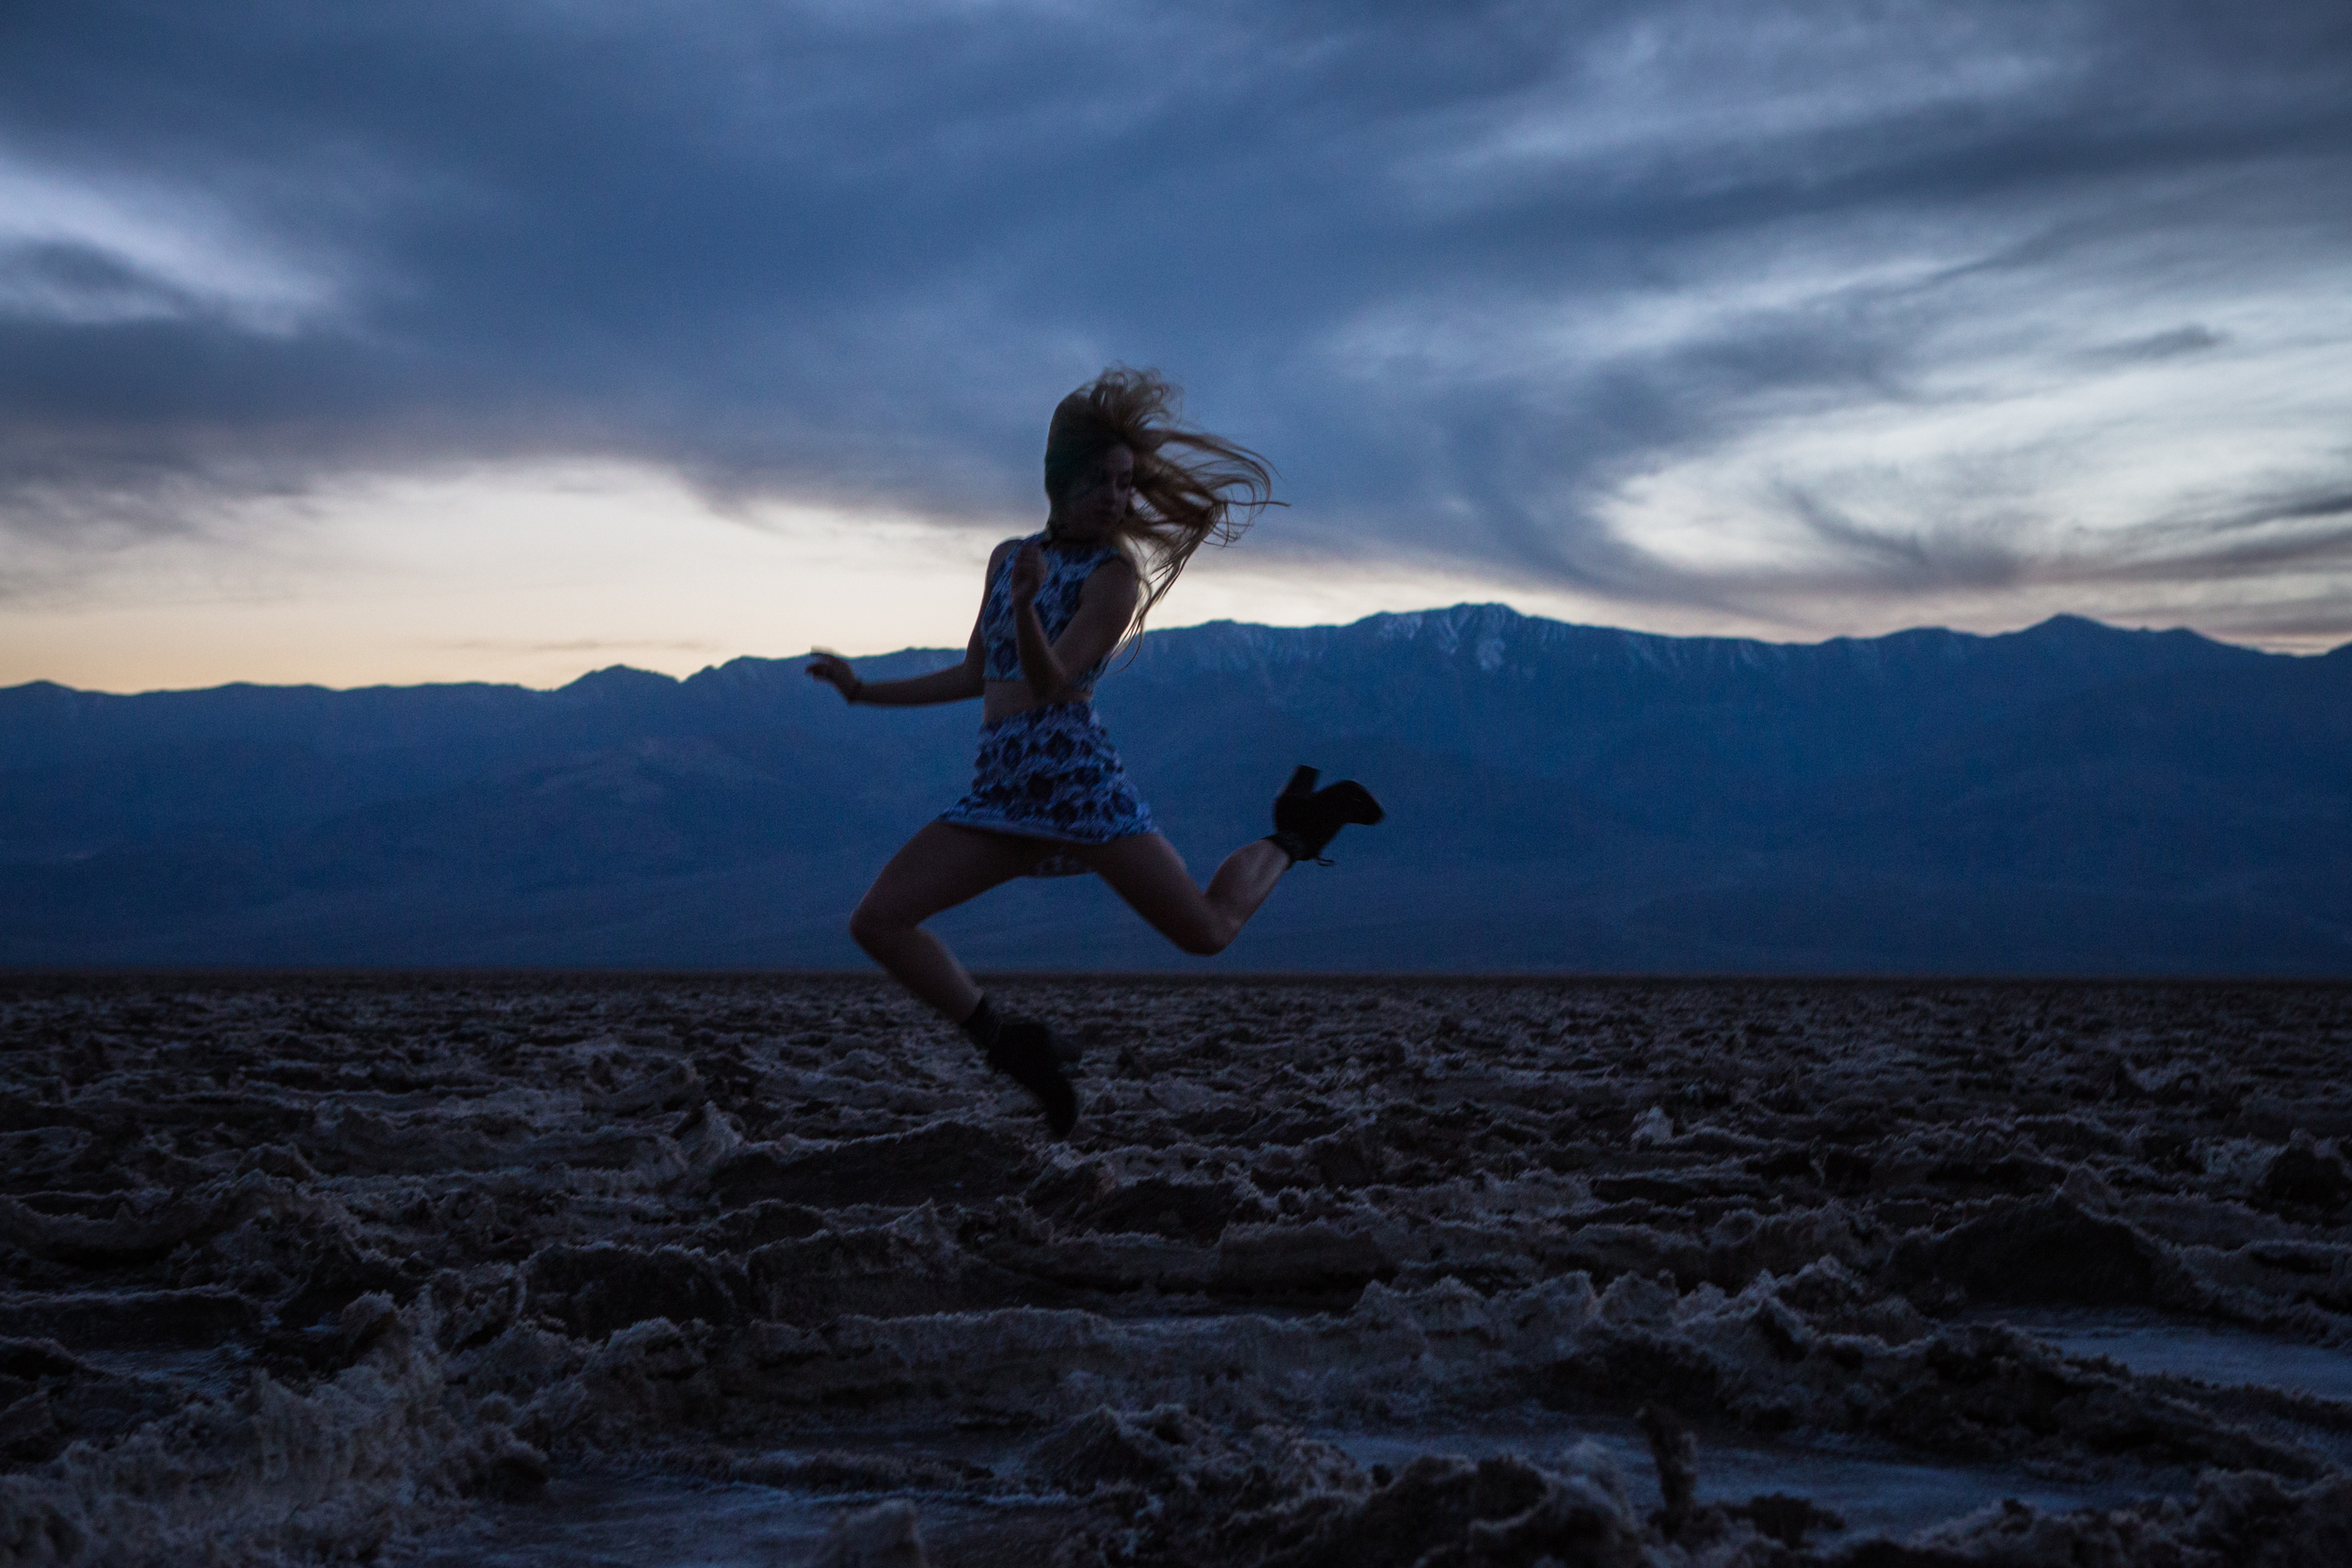 AstroBandit_JordanRose_BadwaterBasin_DeathValley_Sunset_MotelRocks_5.jpg